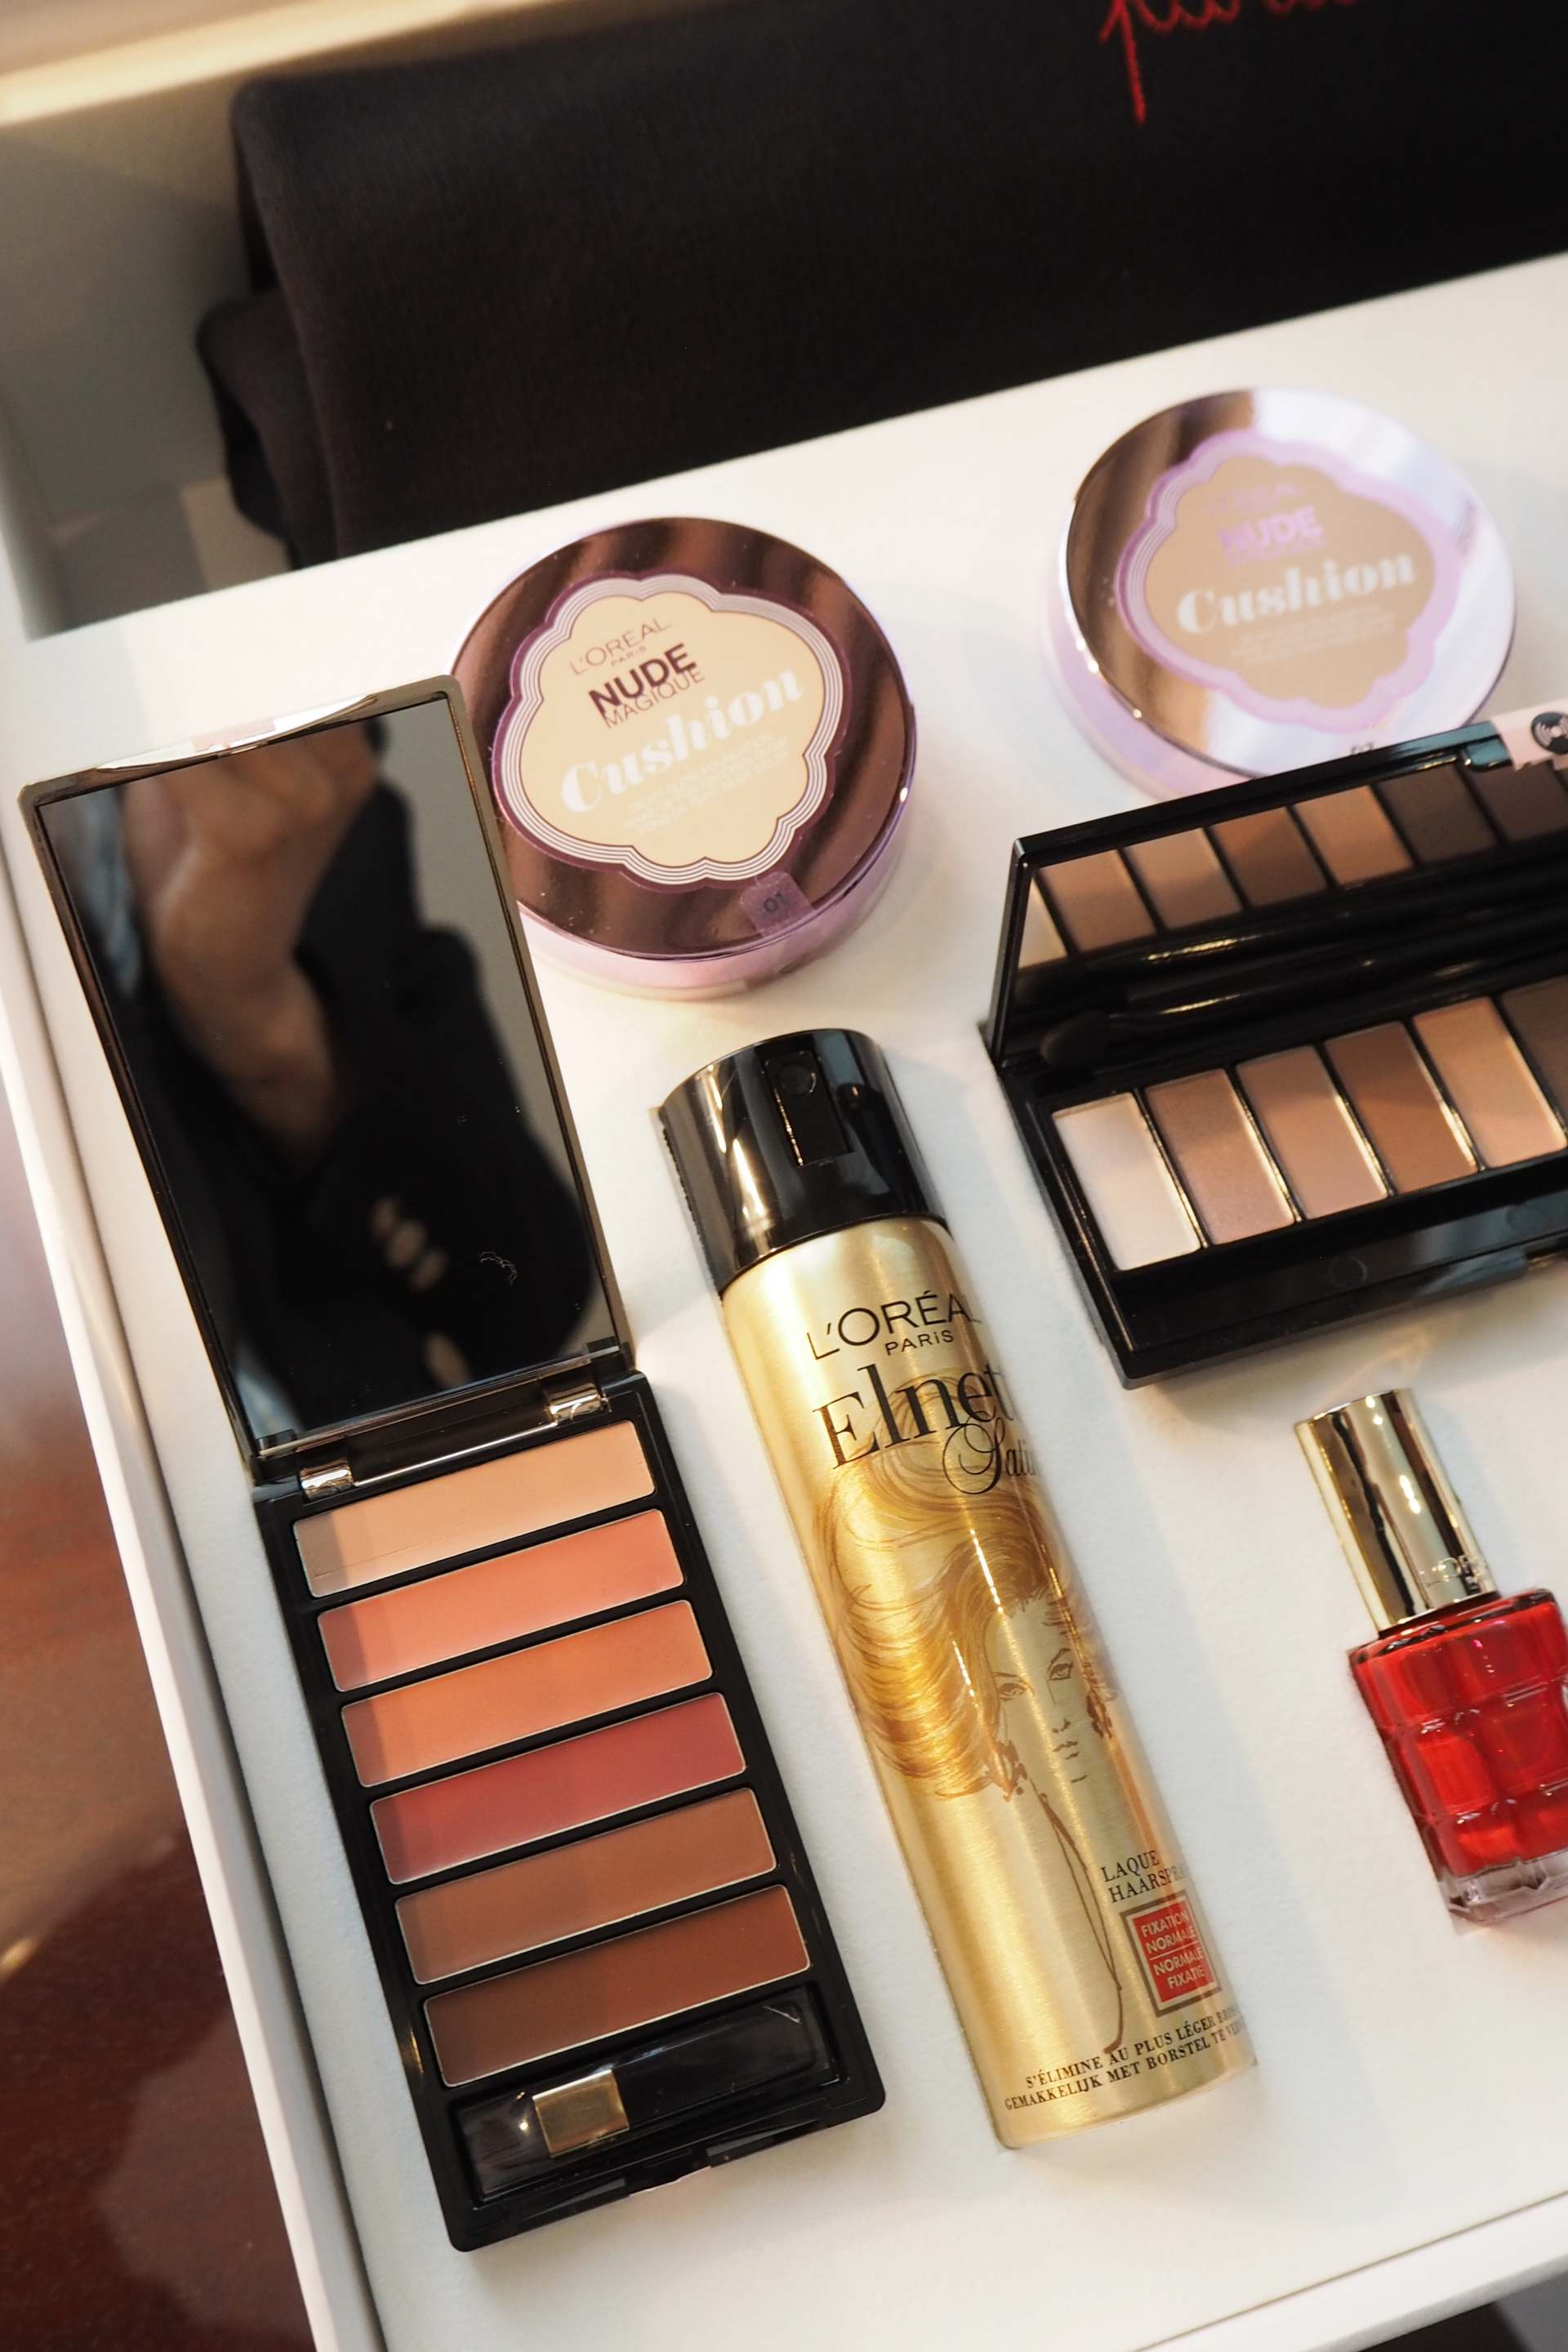 loreal new products, nude lip palette